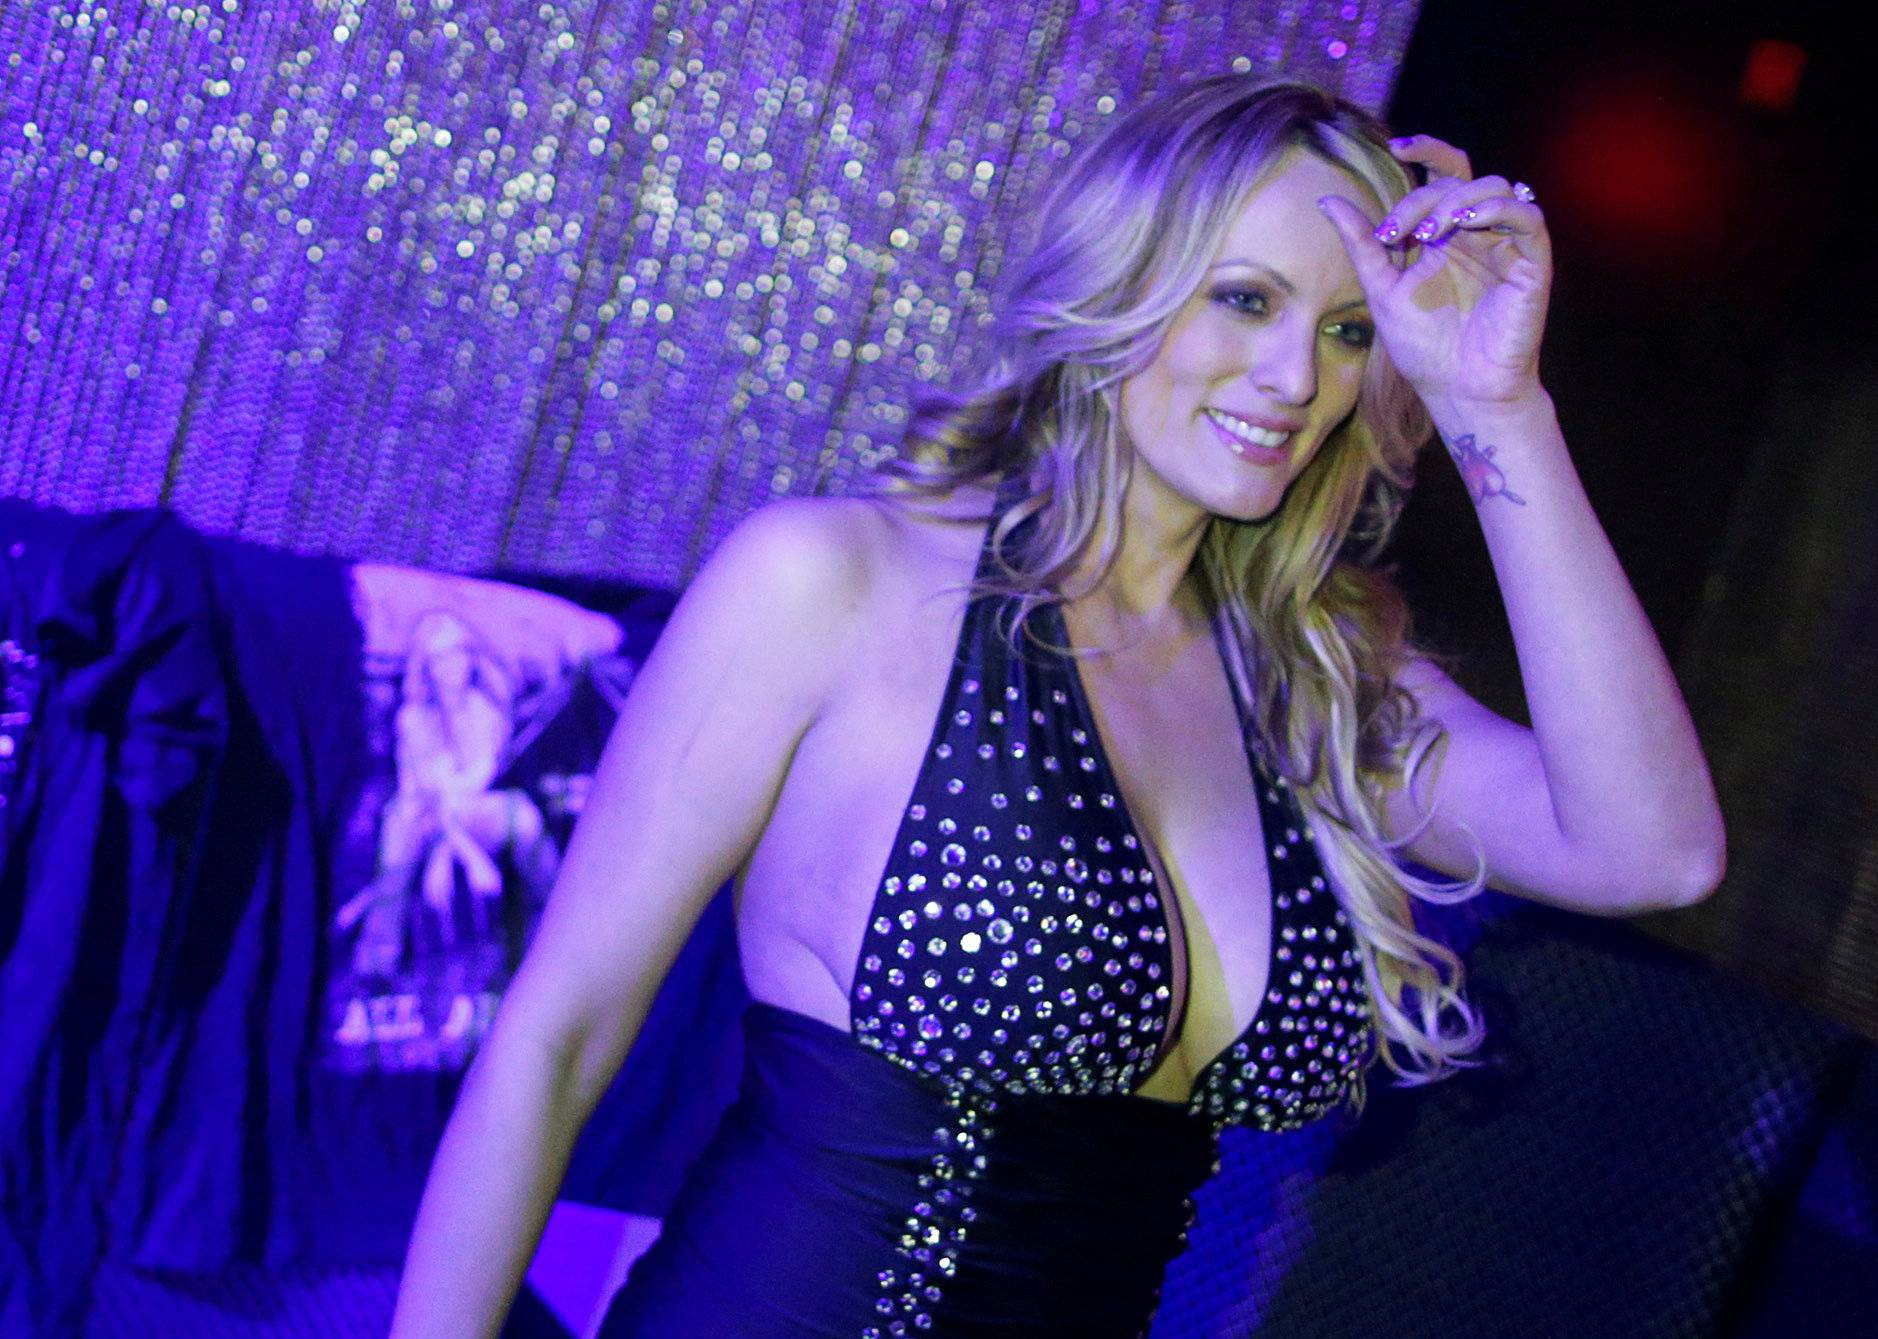 FILE PHOTO: Adult-film actress Clifford, also known as Stormy Daniels, poses for pictures at the end of her striptease show in Gossip Gentleman club in Long Island, New York